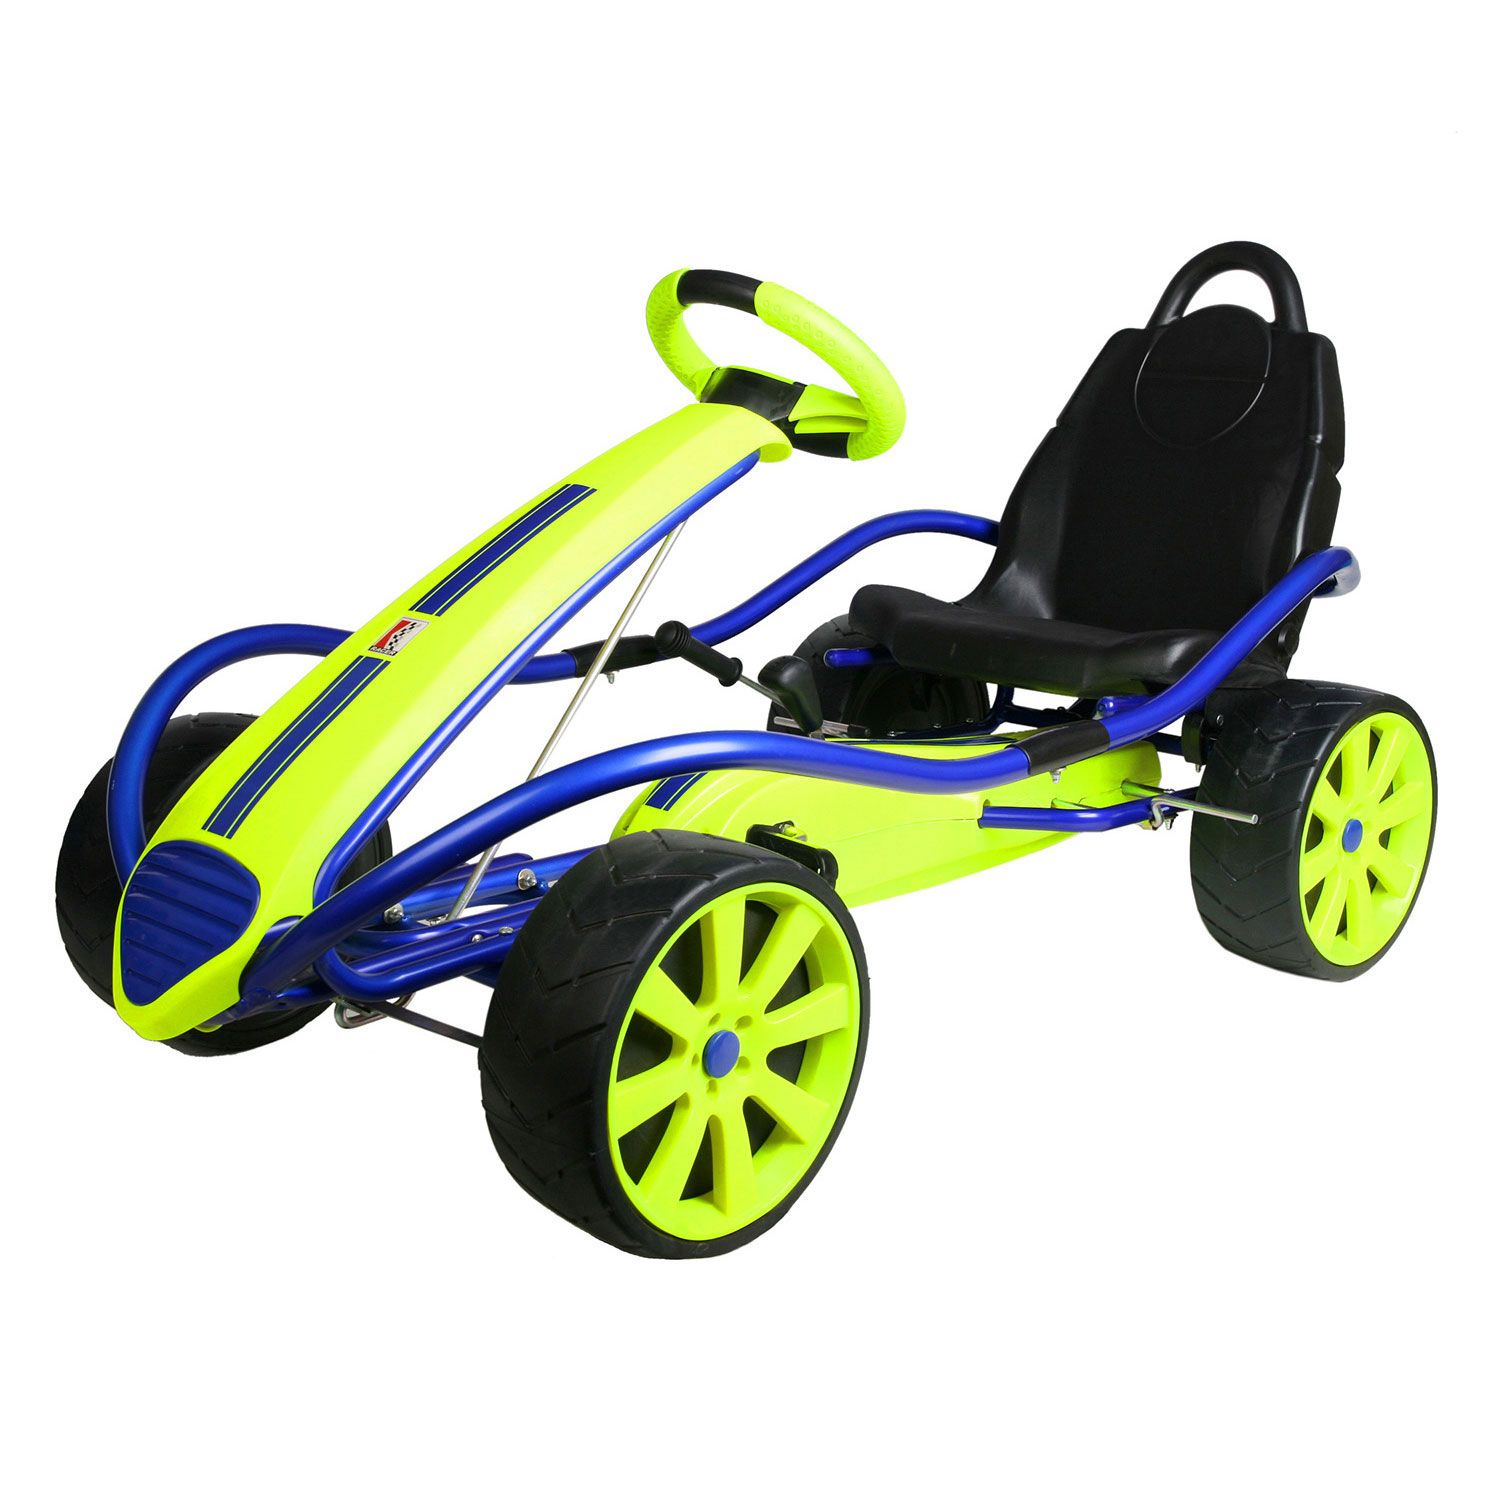 Kettler Sport Kid Racer Pedal Car - Blue/Yellow